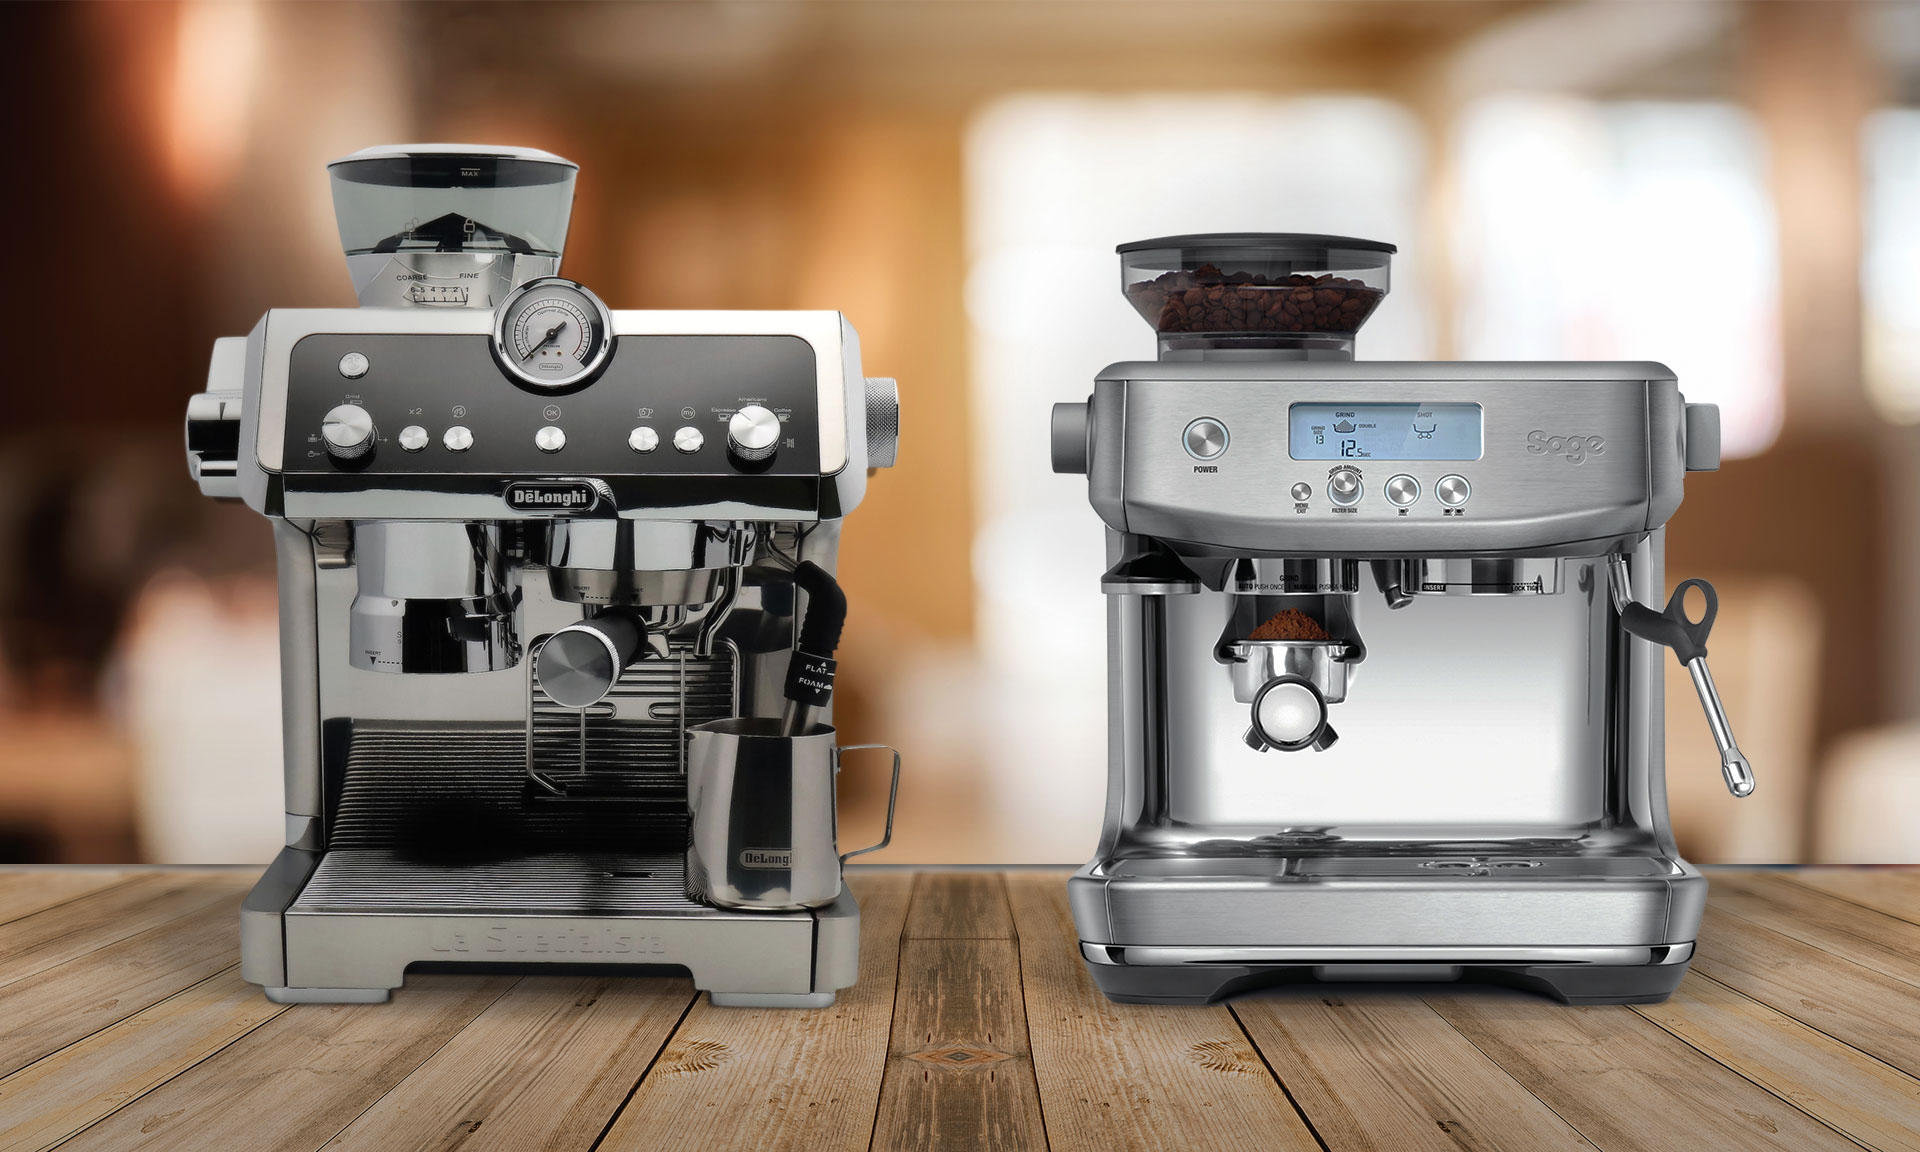 DeLonghi La Specialista vs Sage Barista Pro - which is best ...